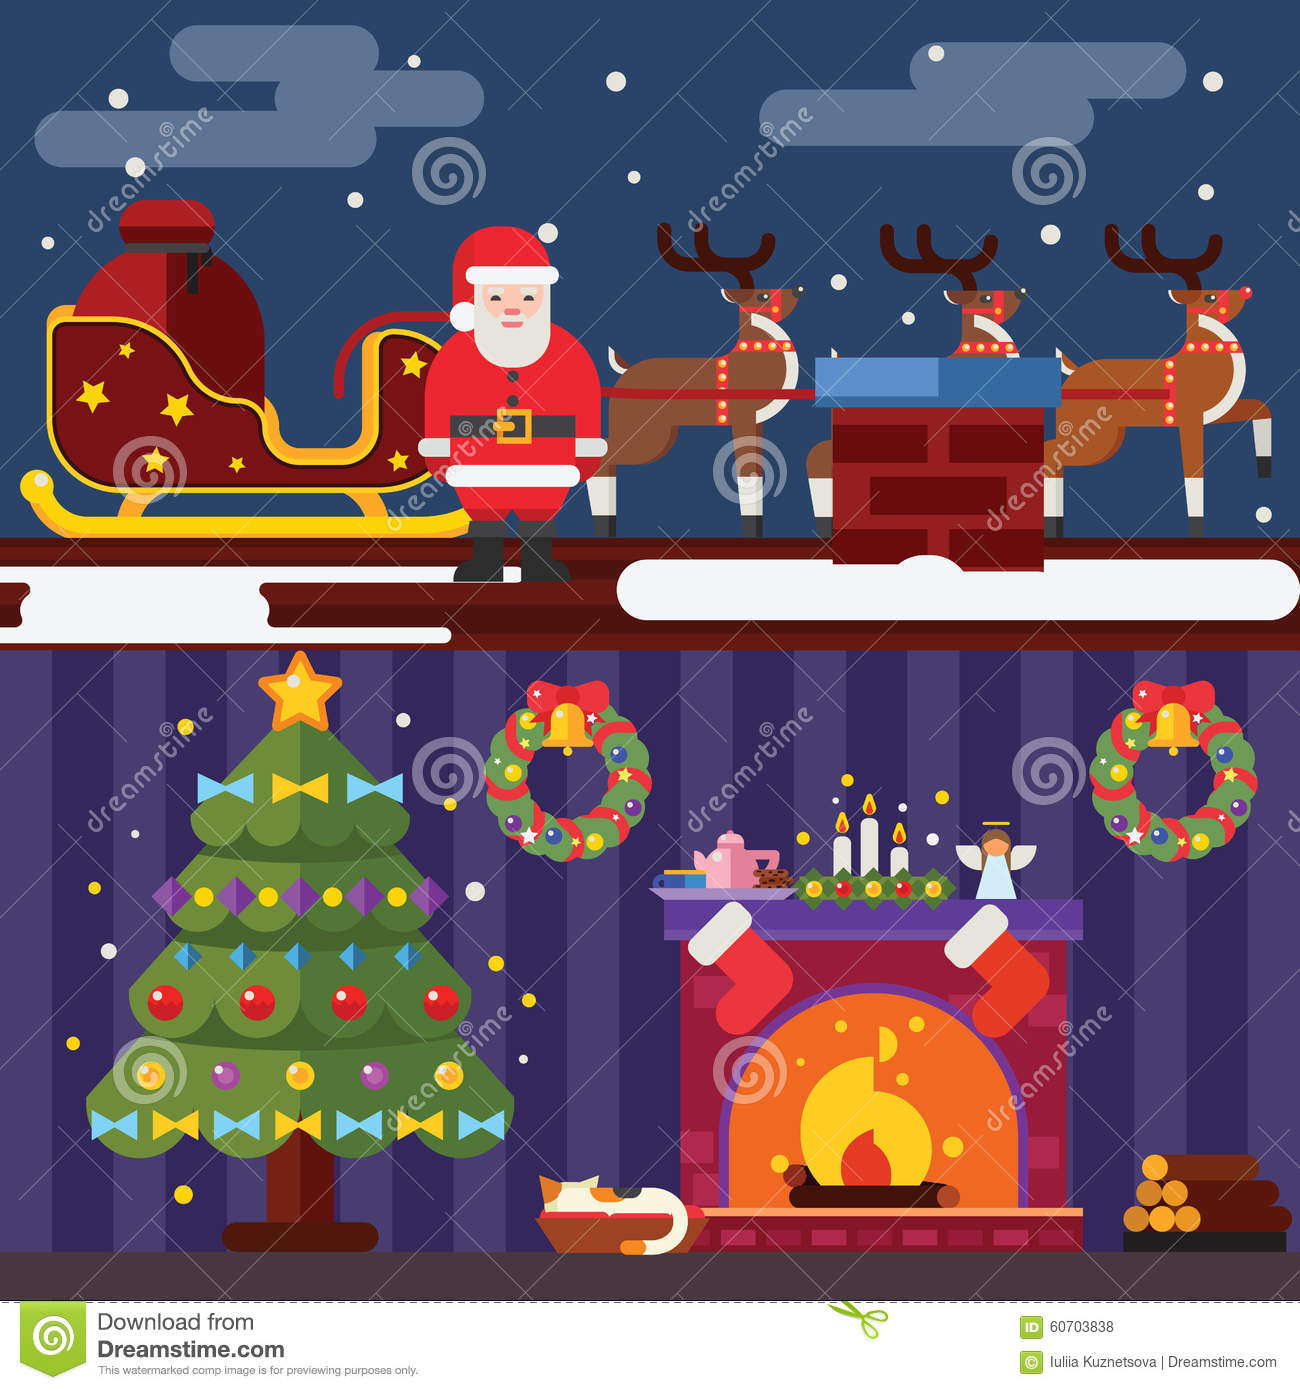 Flat design new year landscape and room situation symbols christmas flat design new year landscape and room situation symbols christmas accessories icons greeting card elements trendy modern kristyandbryce Gallery